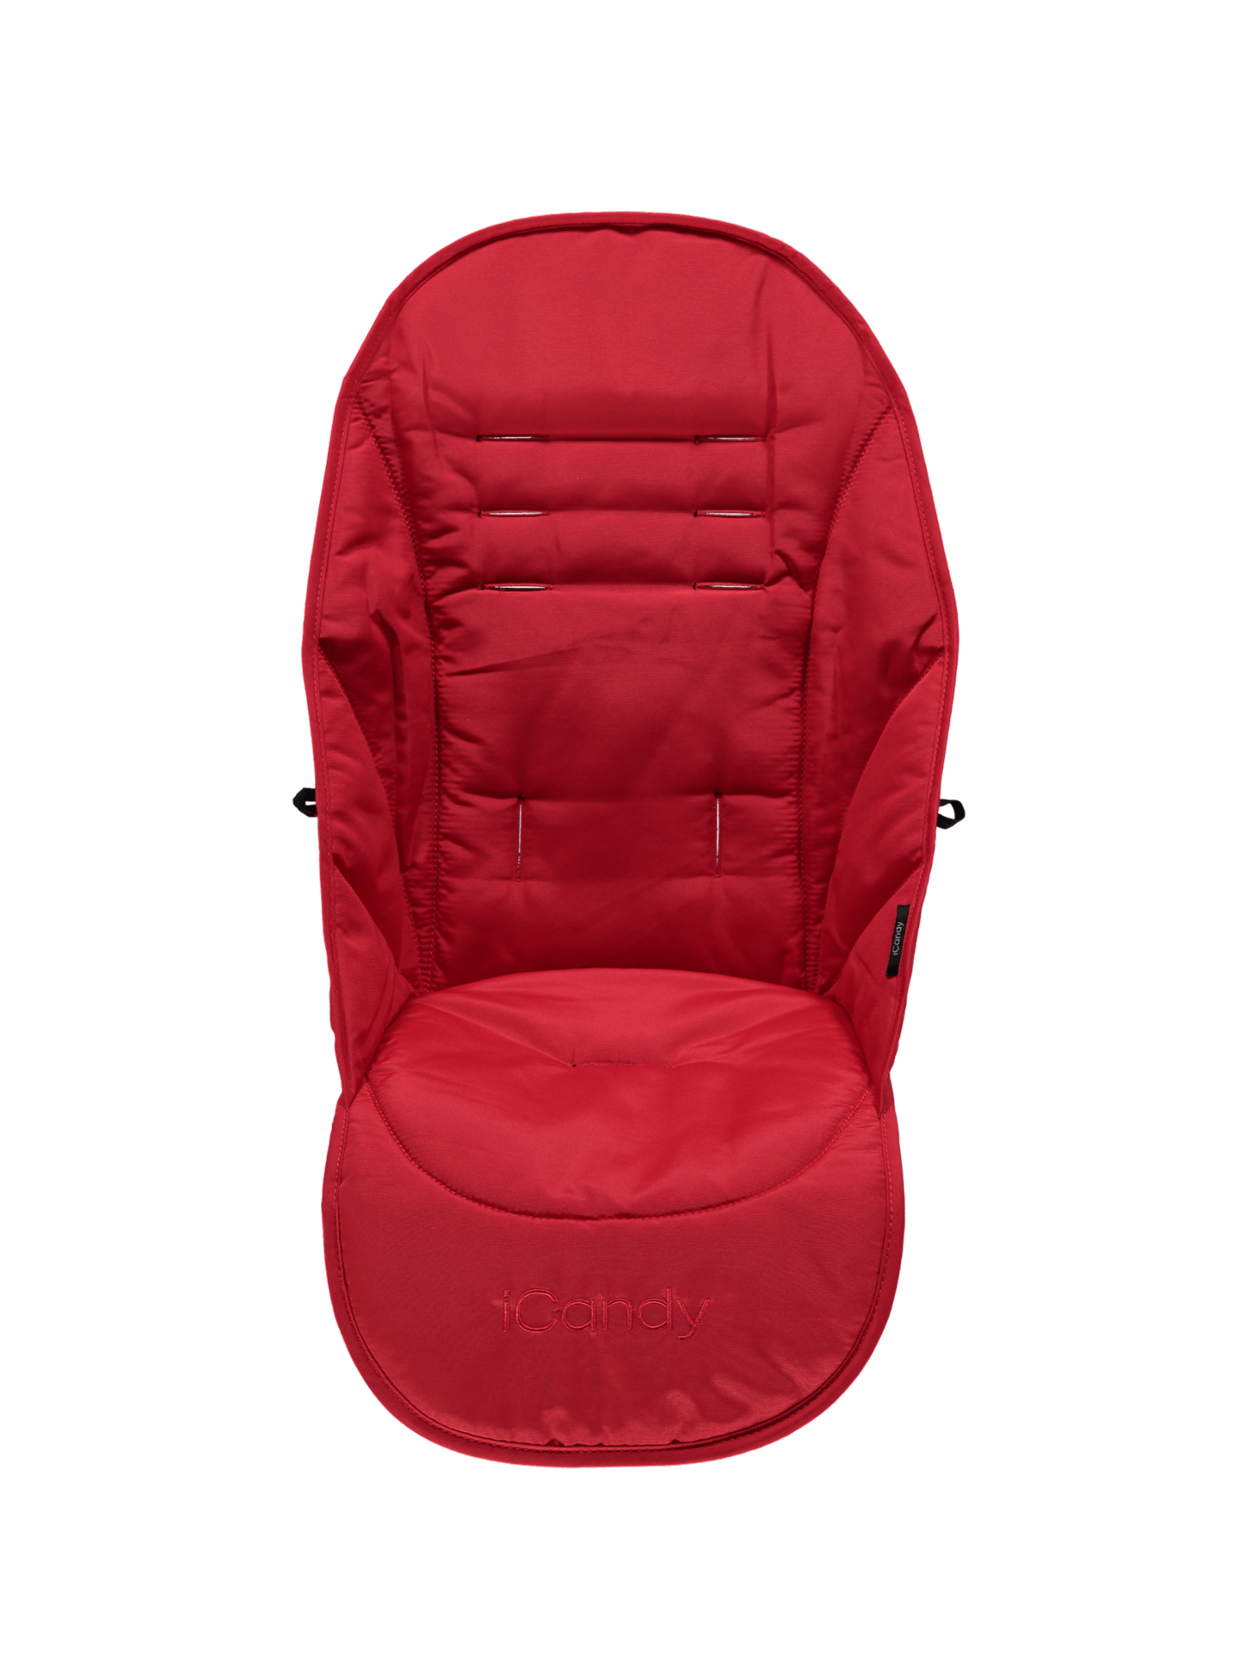 Strawberry2 Seat Liner - Lush